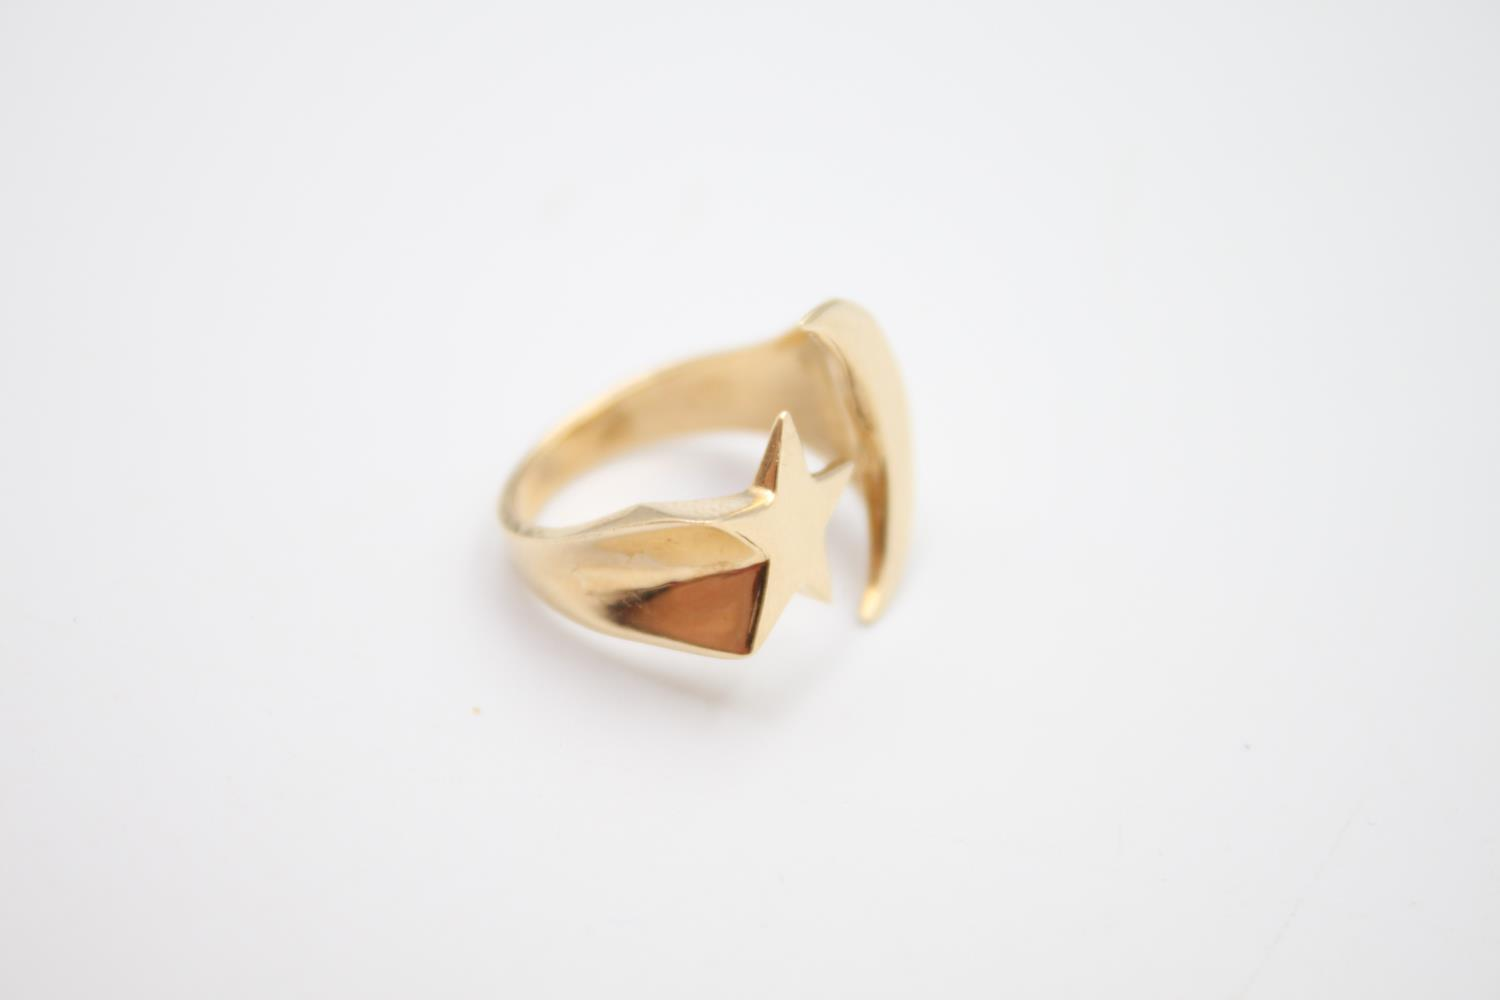 14ct gold moon and star signet style ring 4.8g Size K - Image 3 of 5